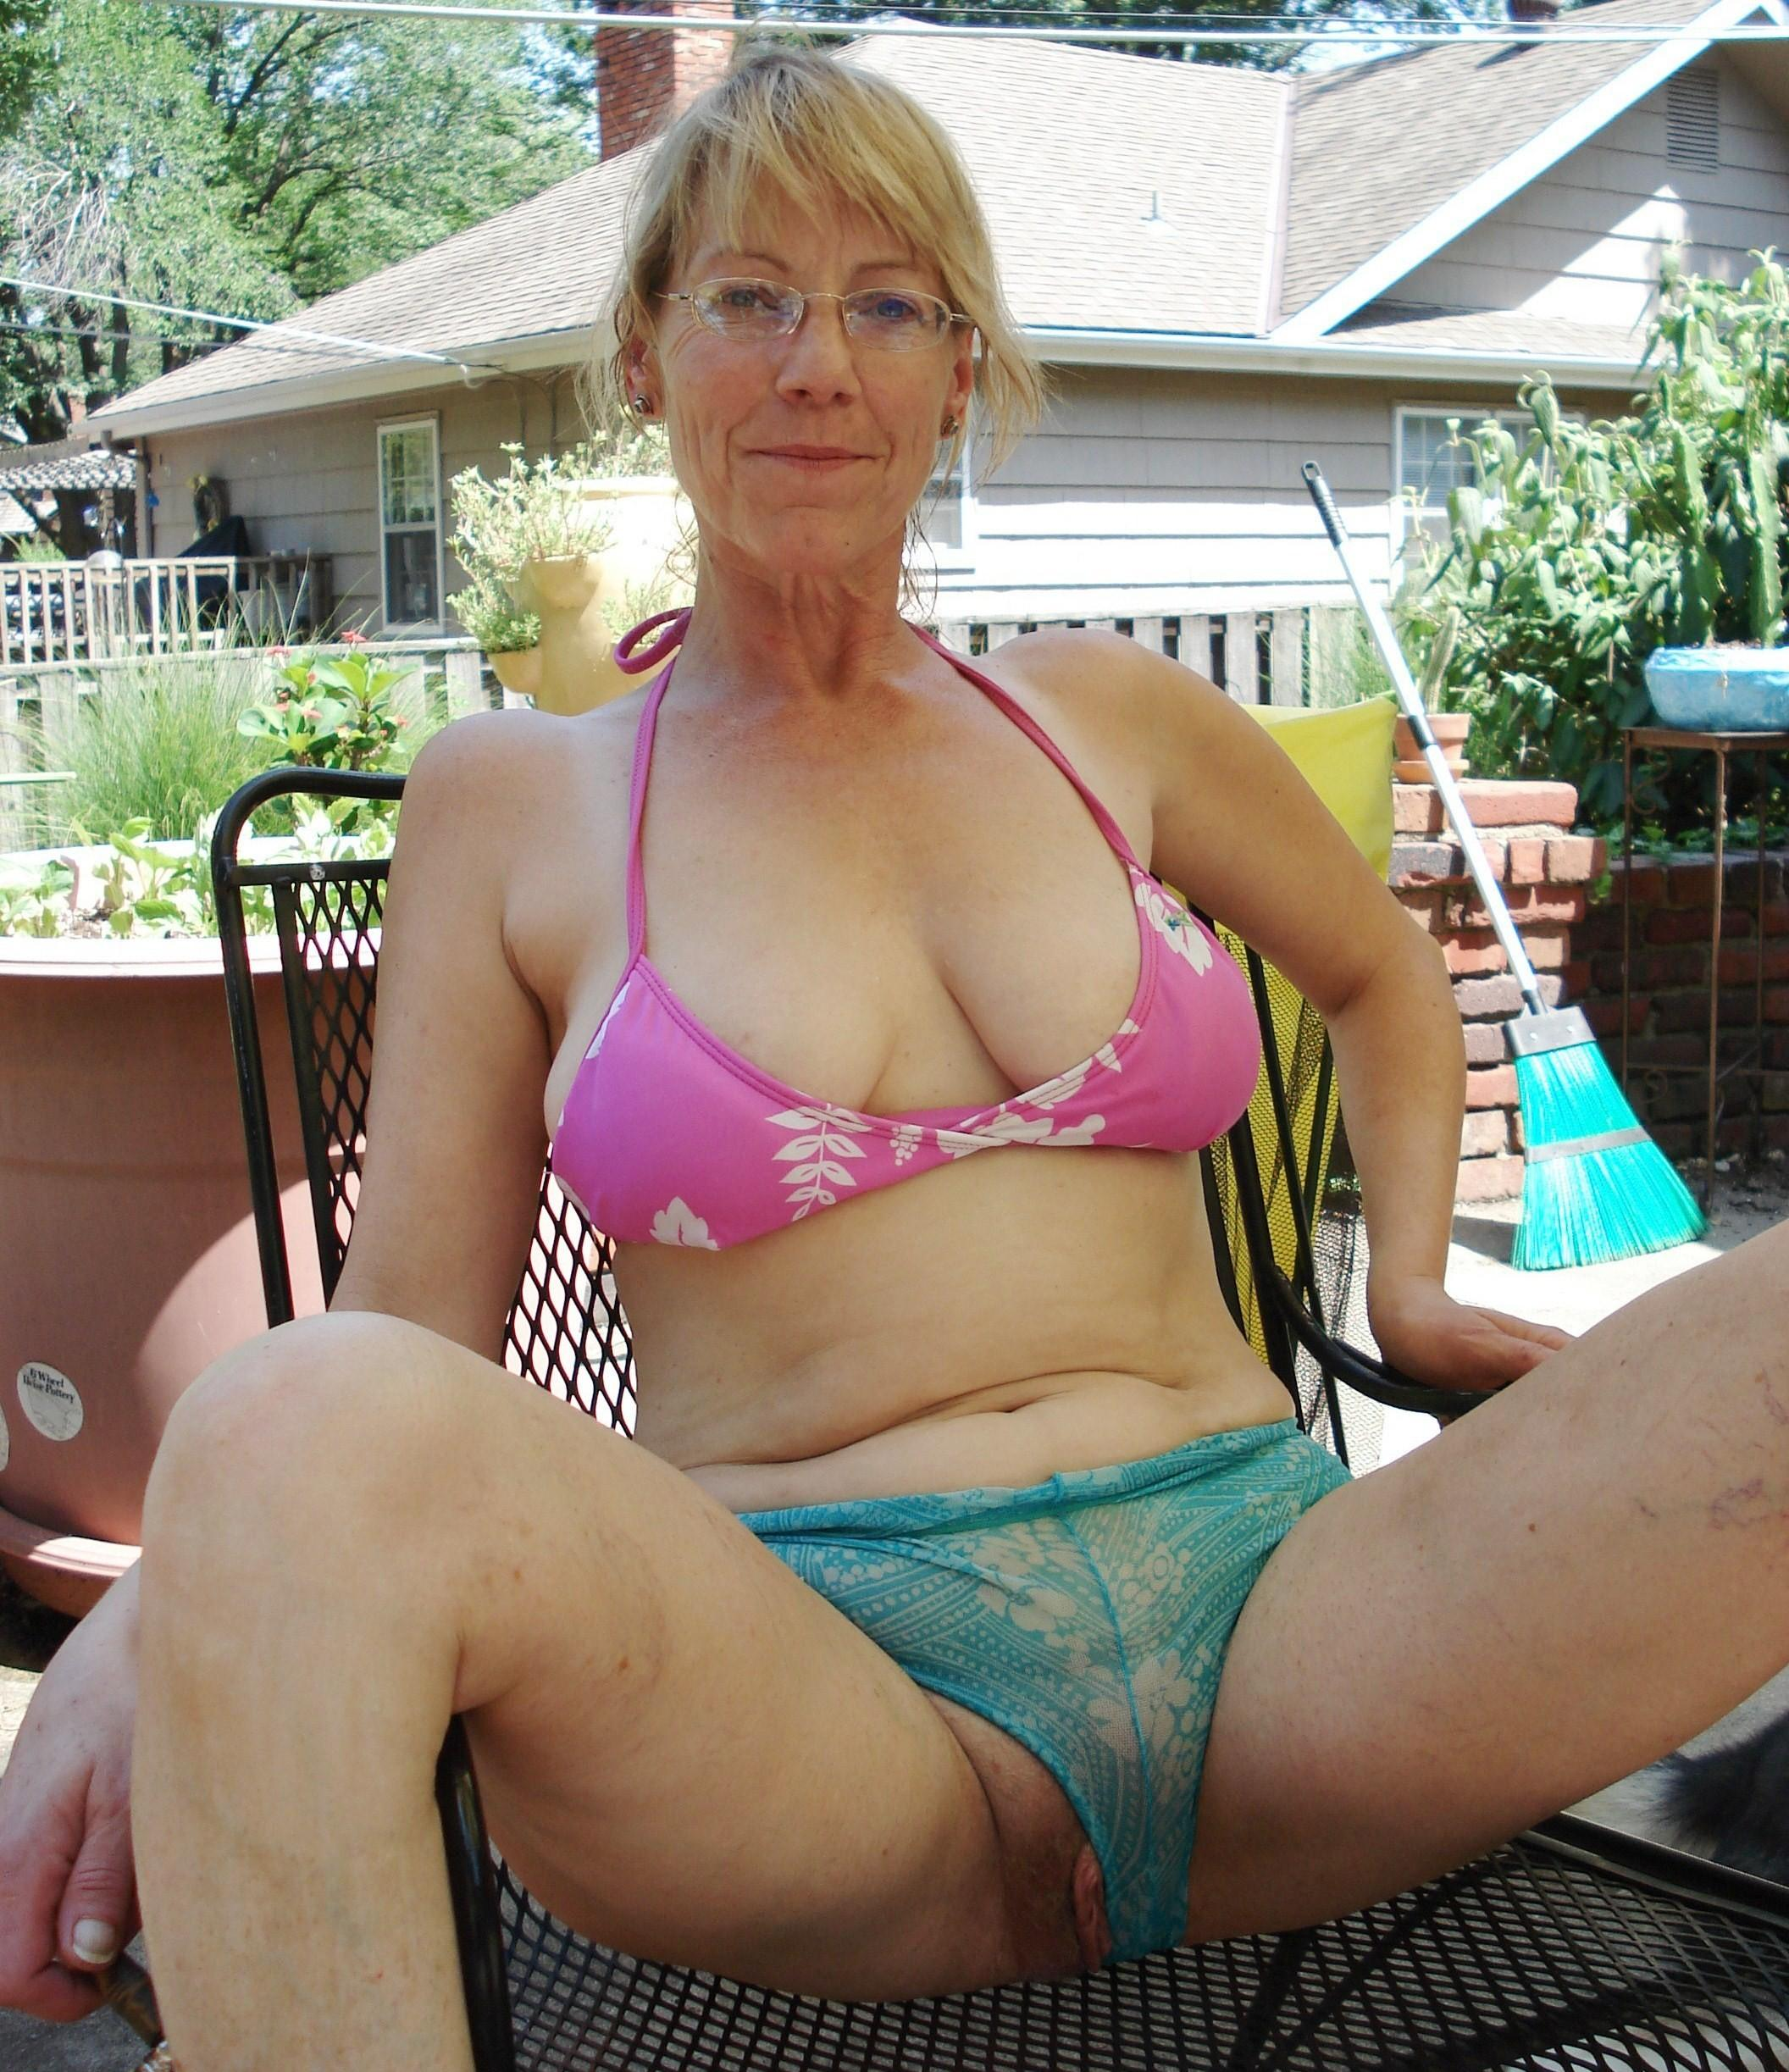 Tori a 62 old perverted HOMEMADE GRANNY with some great private homemade pictures